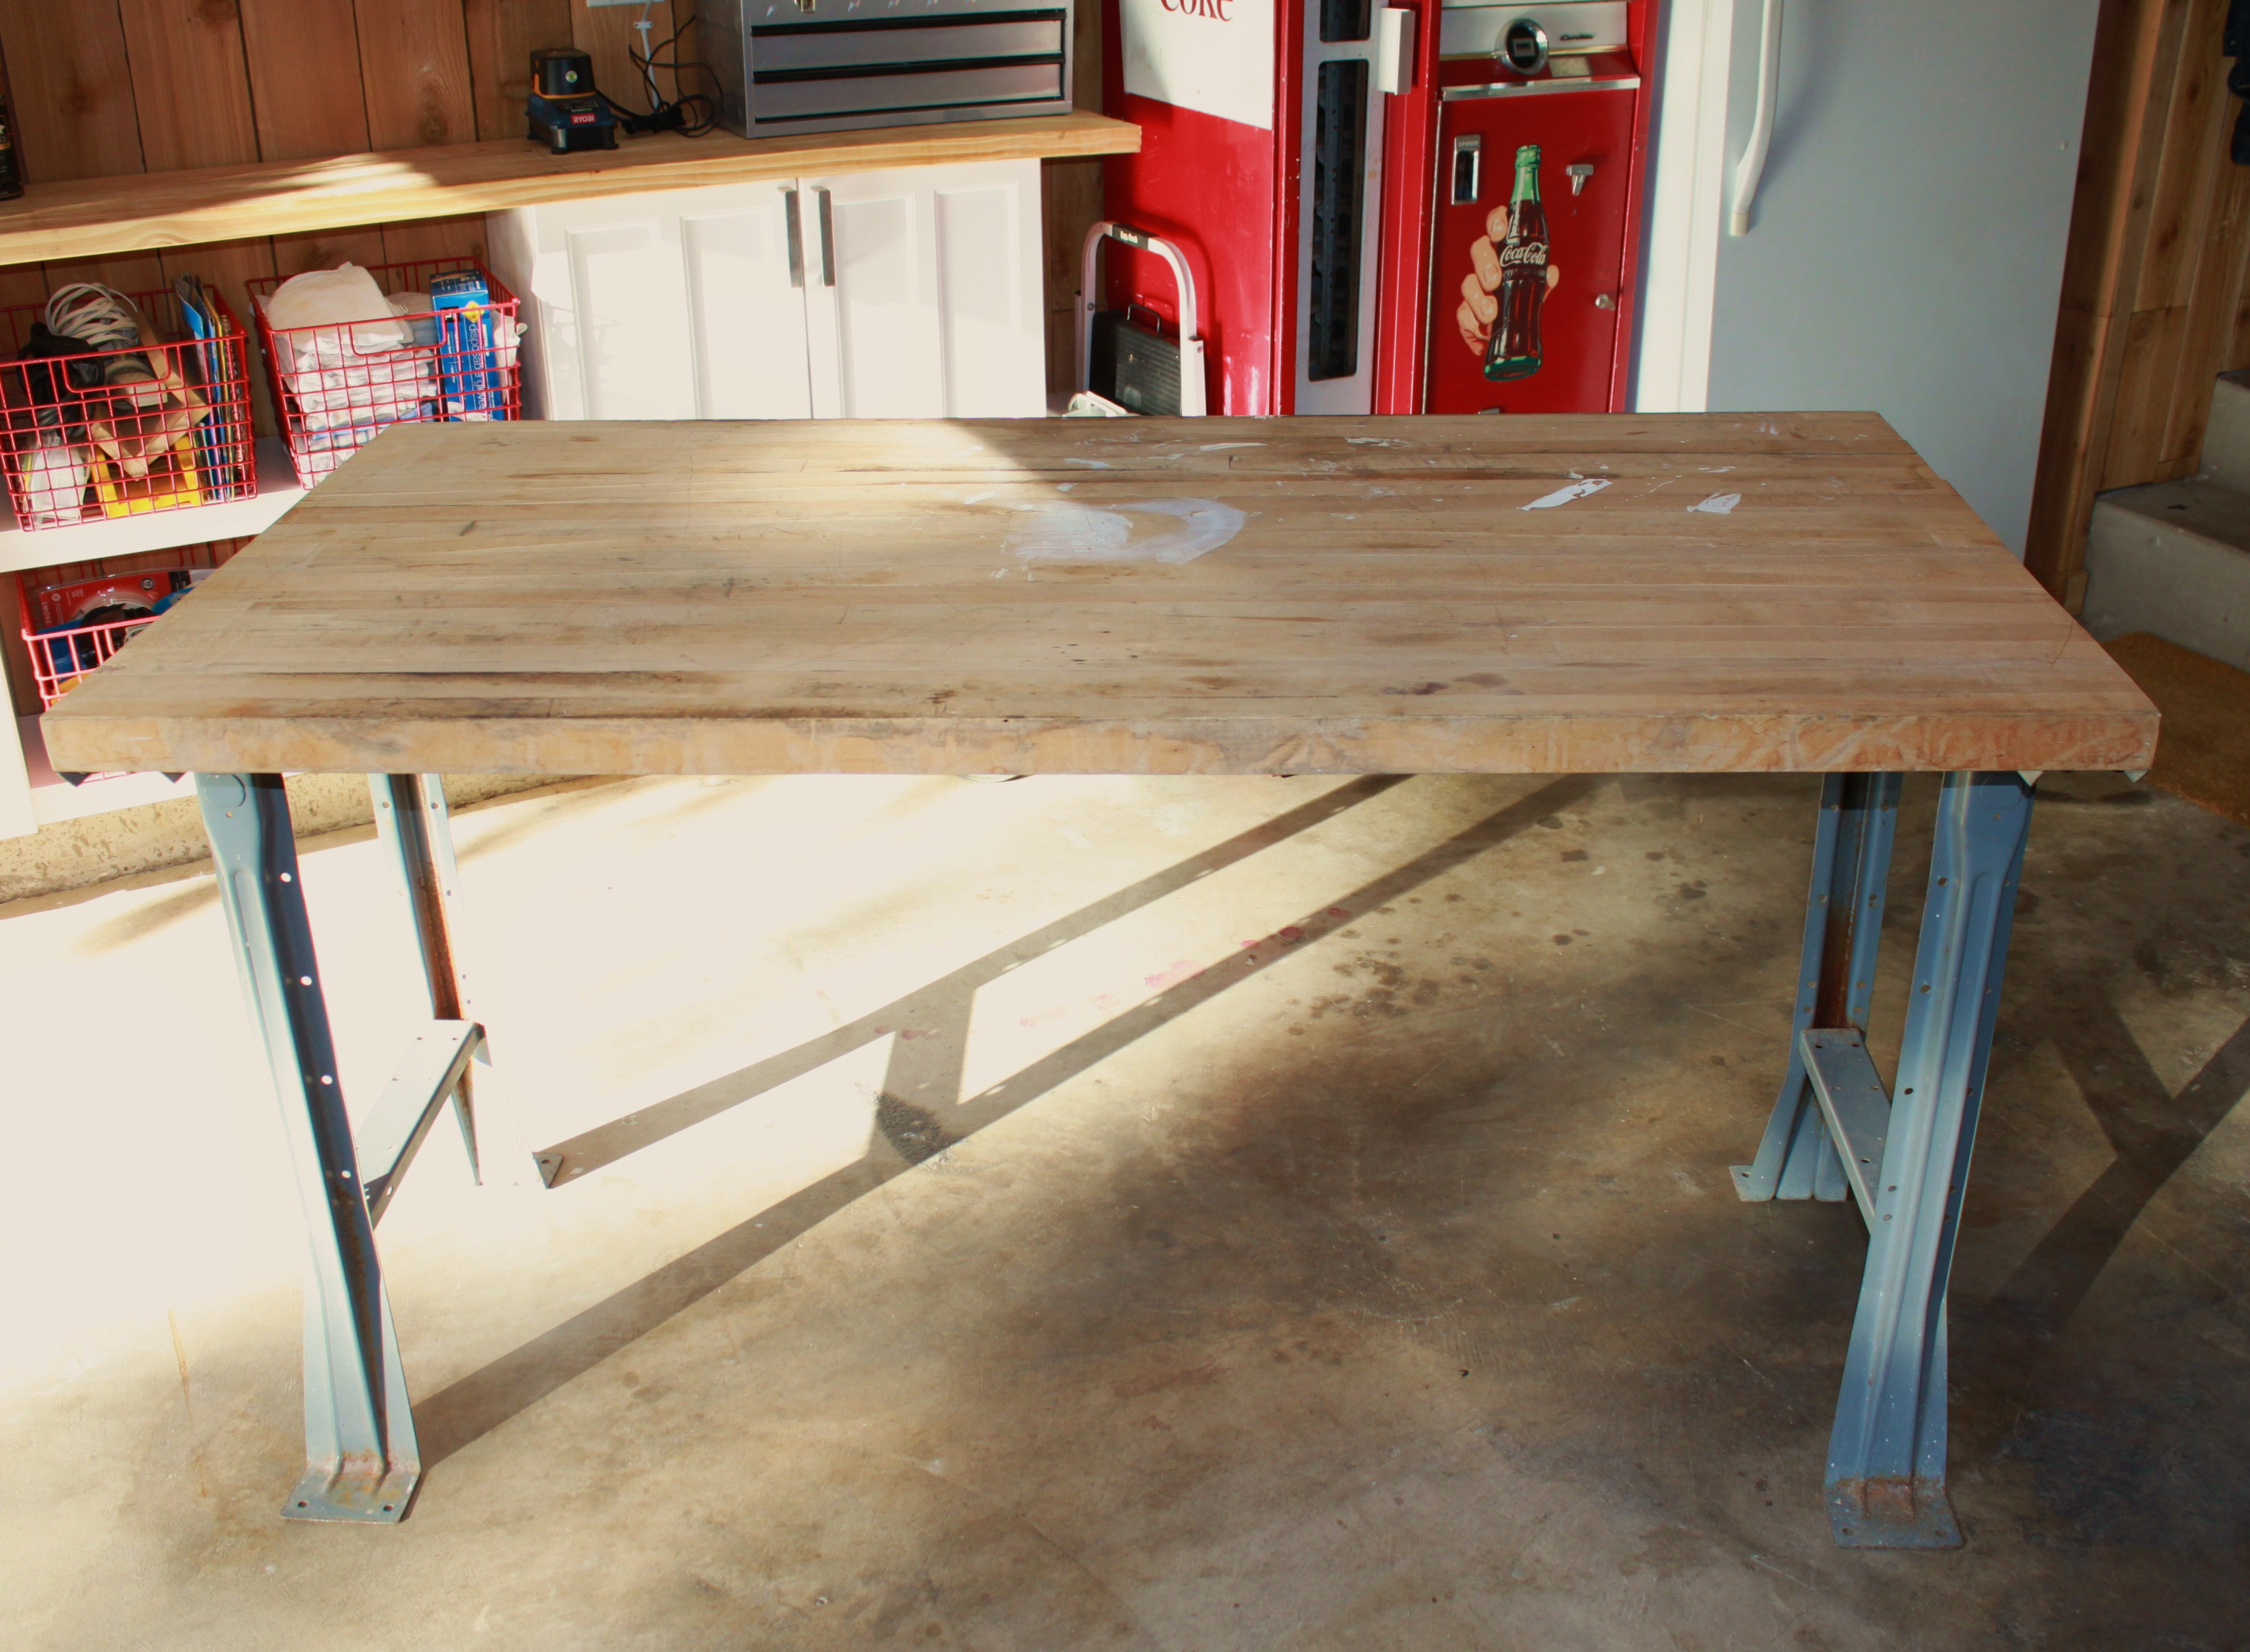 Work Table Design Build 4 X 8 Work Table Plans Diy Woodworking Plans Outdoor